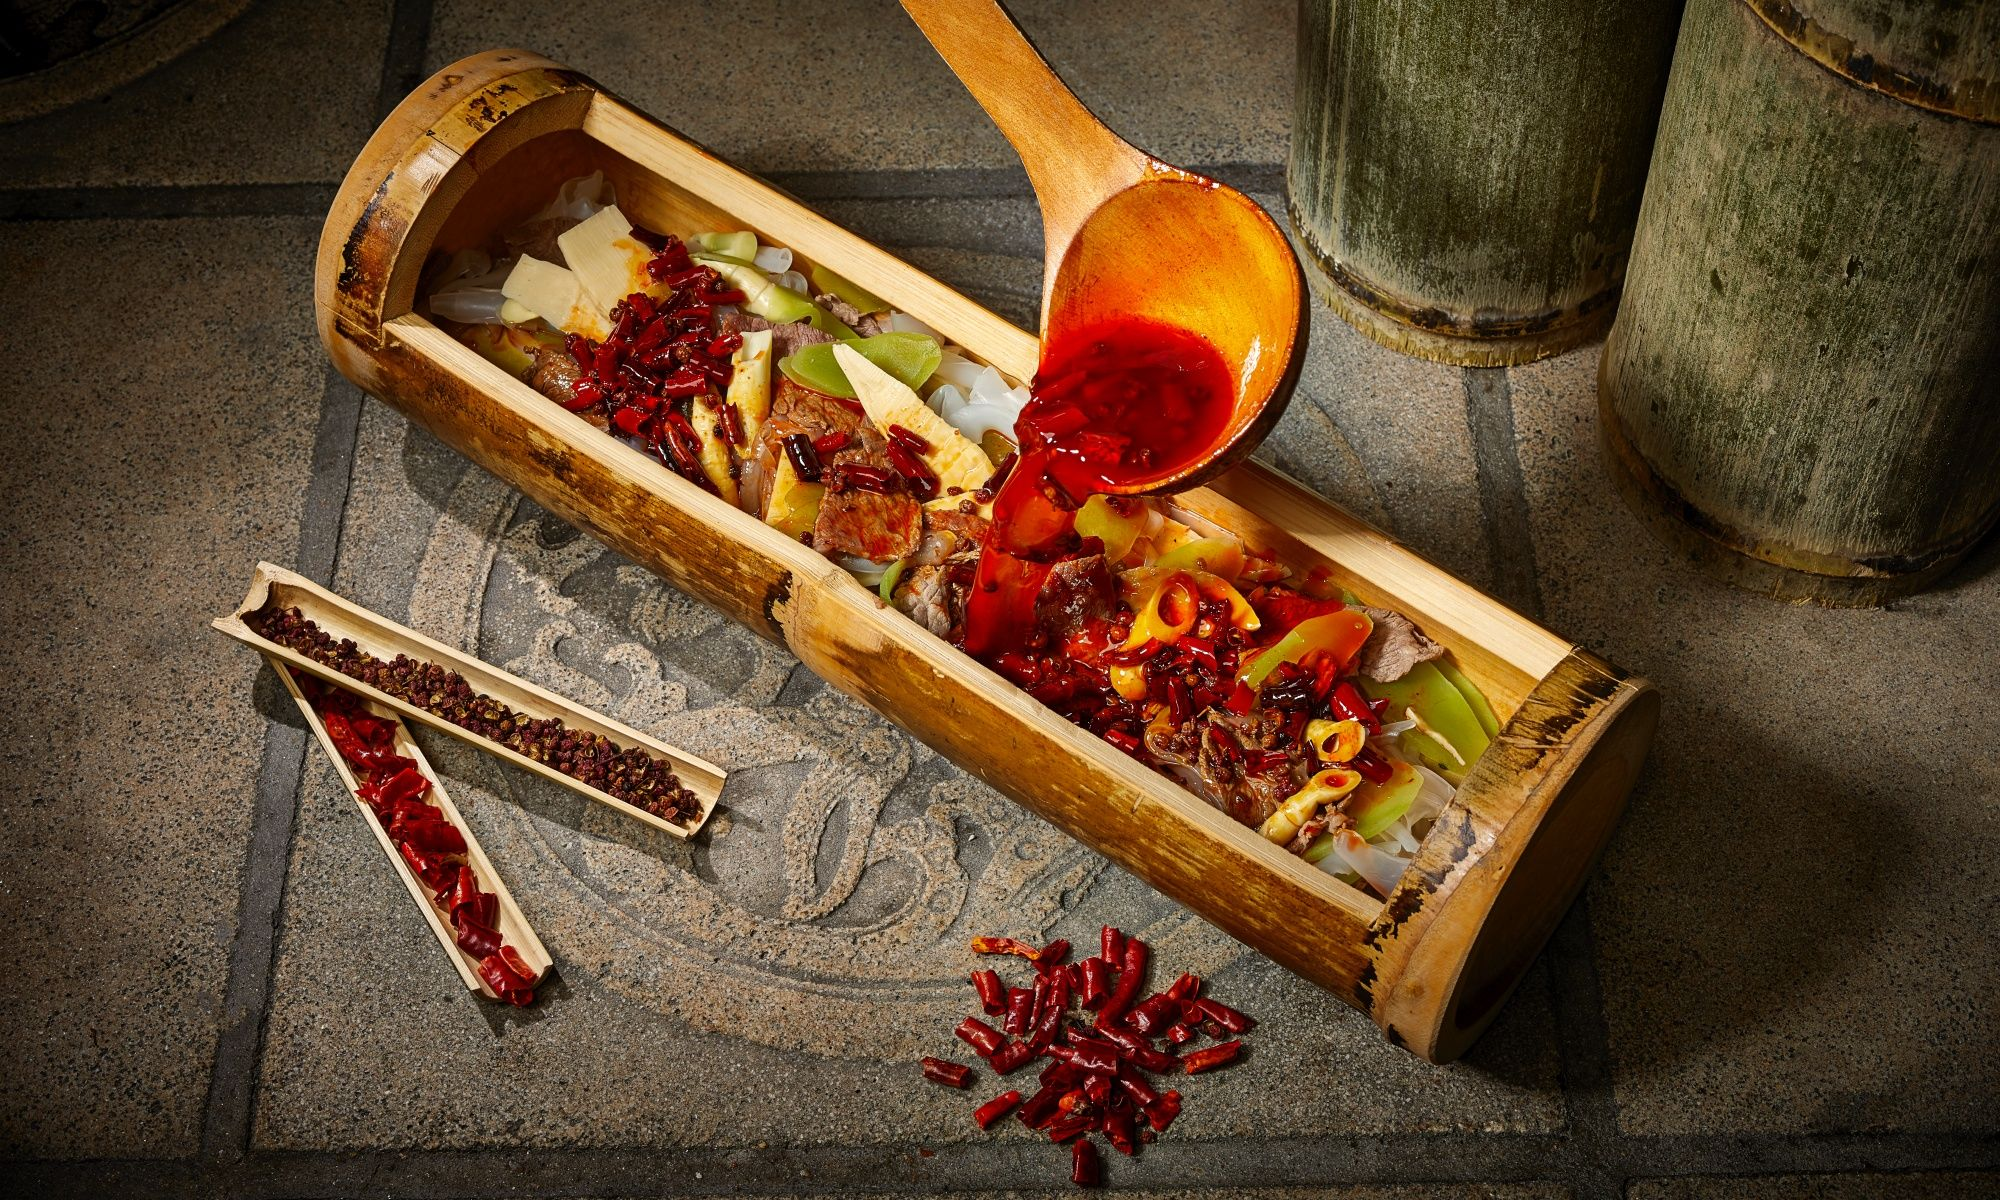 Hutong Launches New Bamboo-Themed Menu